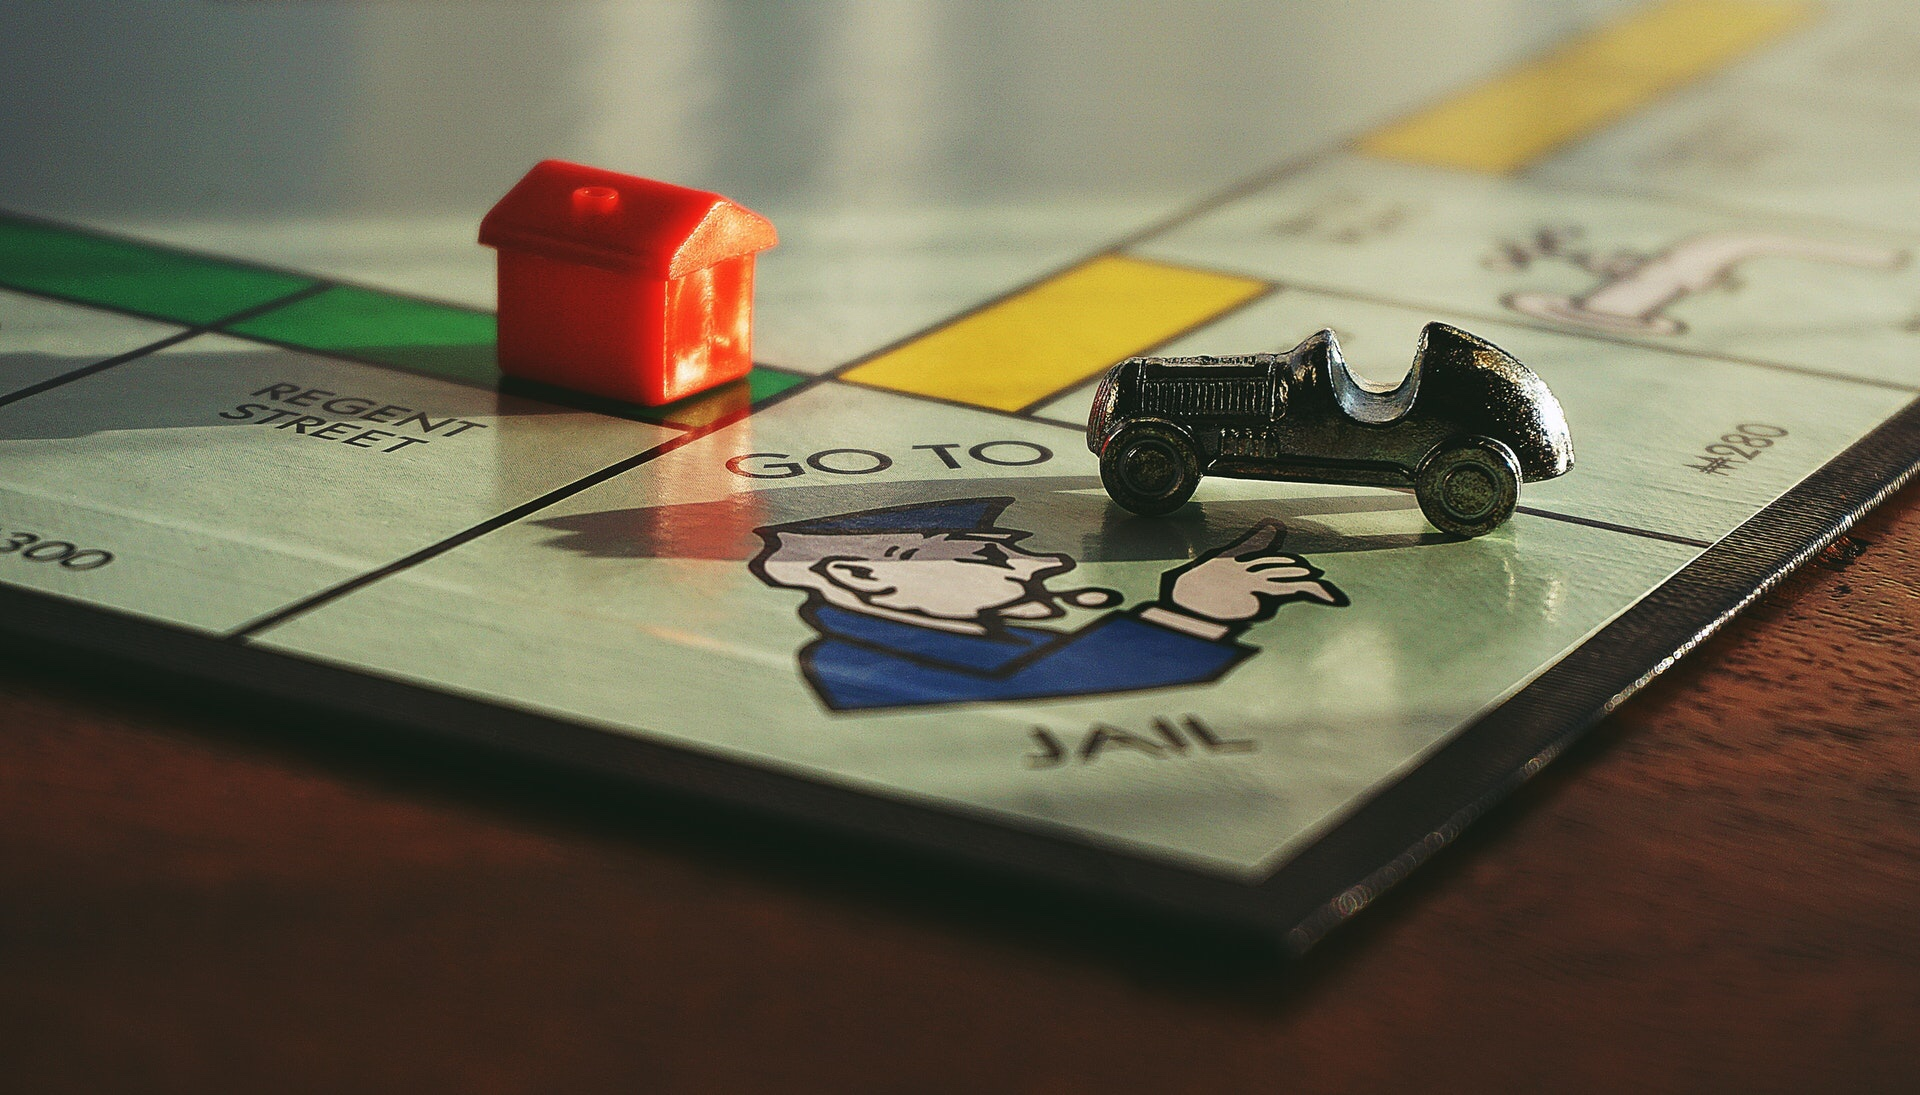 Close up photo of the popular money based game of Monopoly